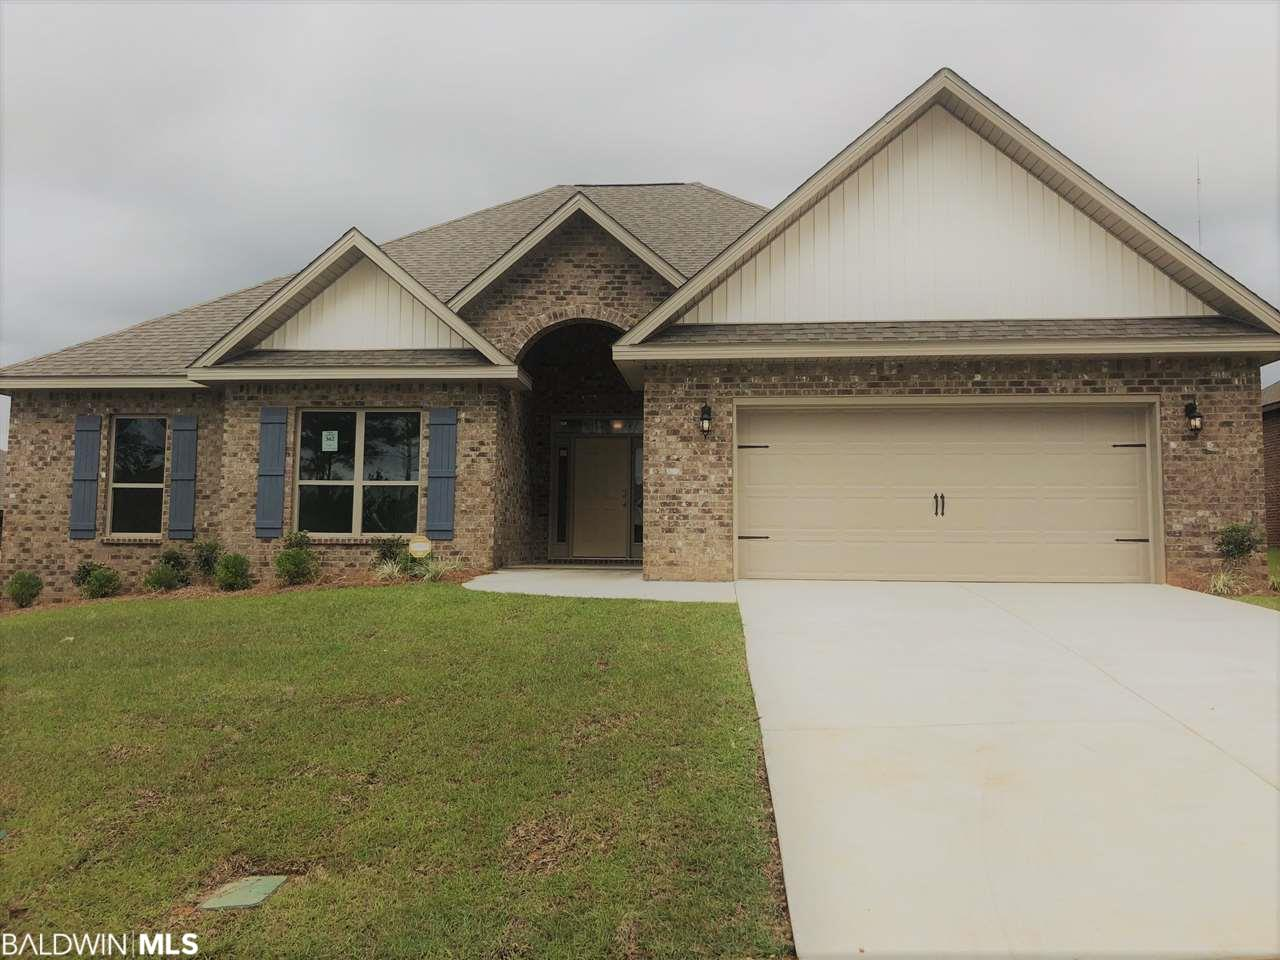 13154 Sanderling Loop Lot 362, Spanish Fort, AL 36527